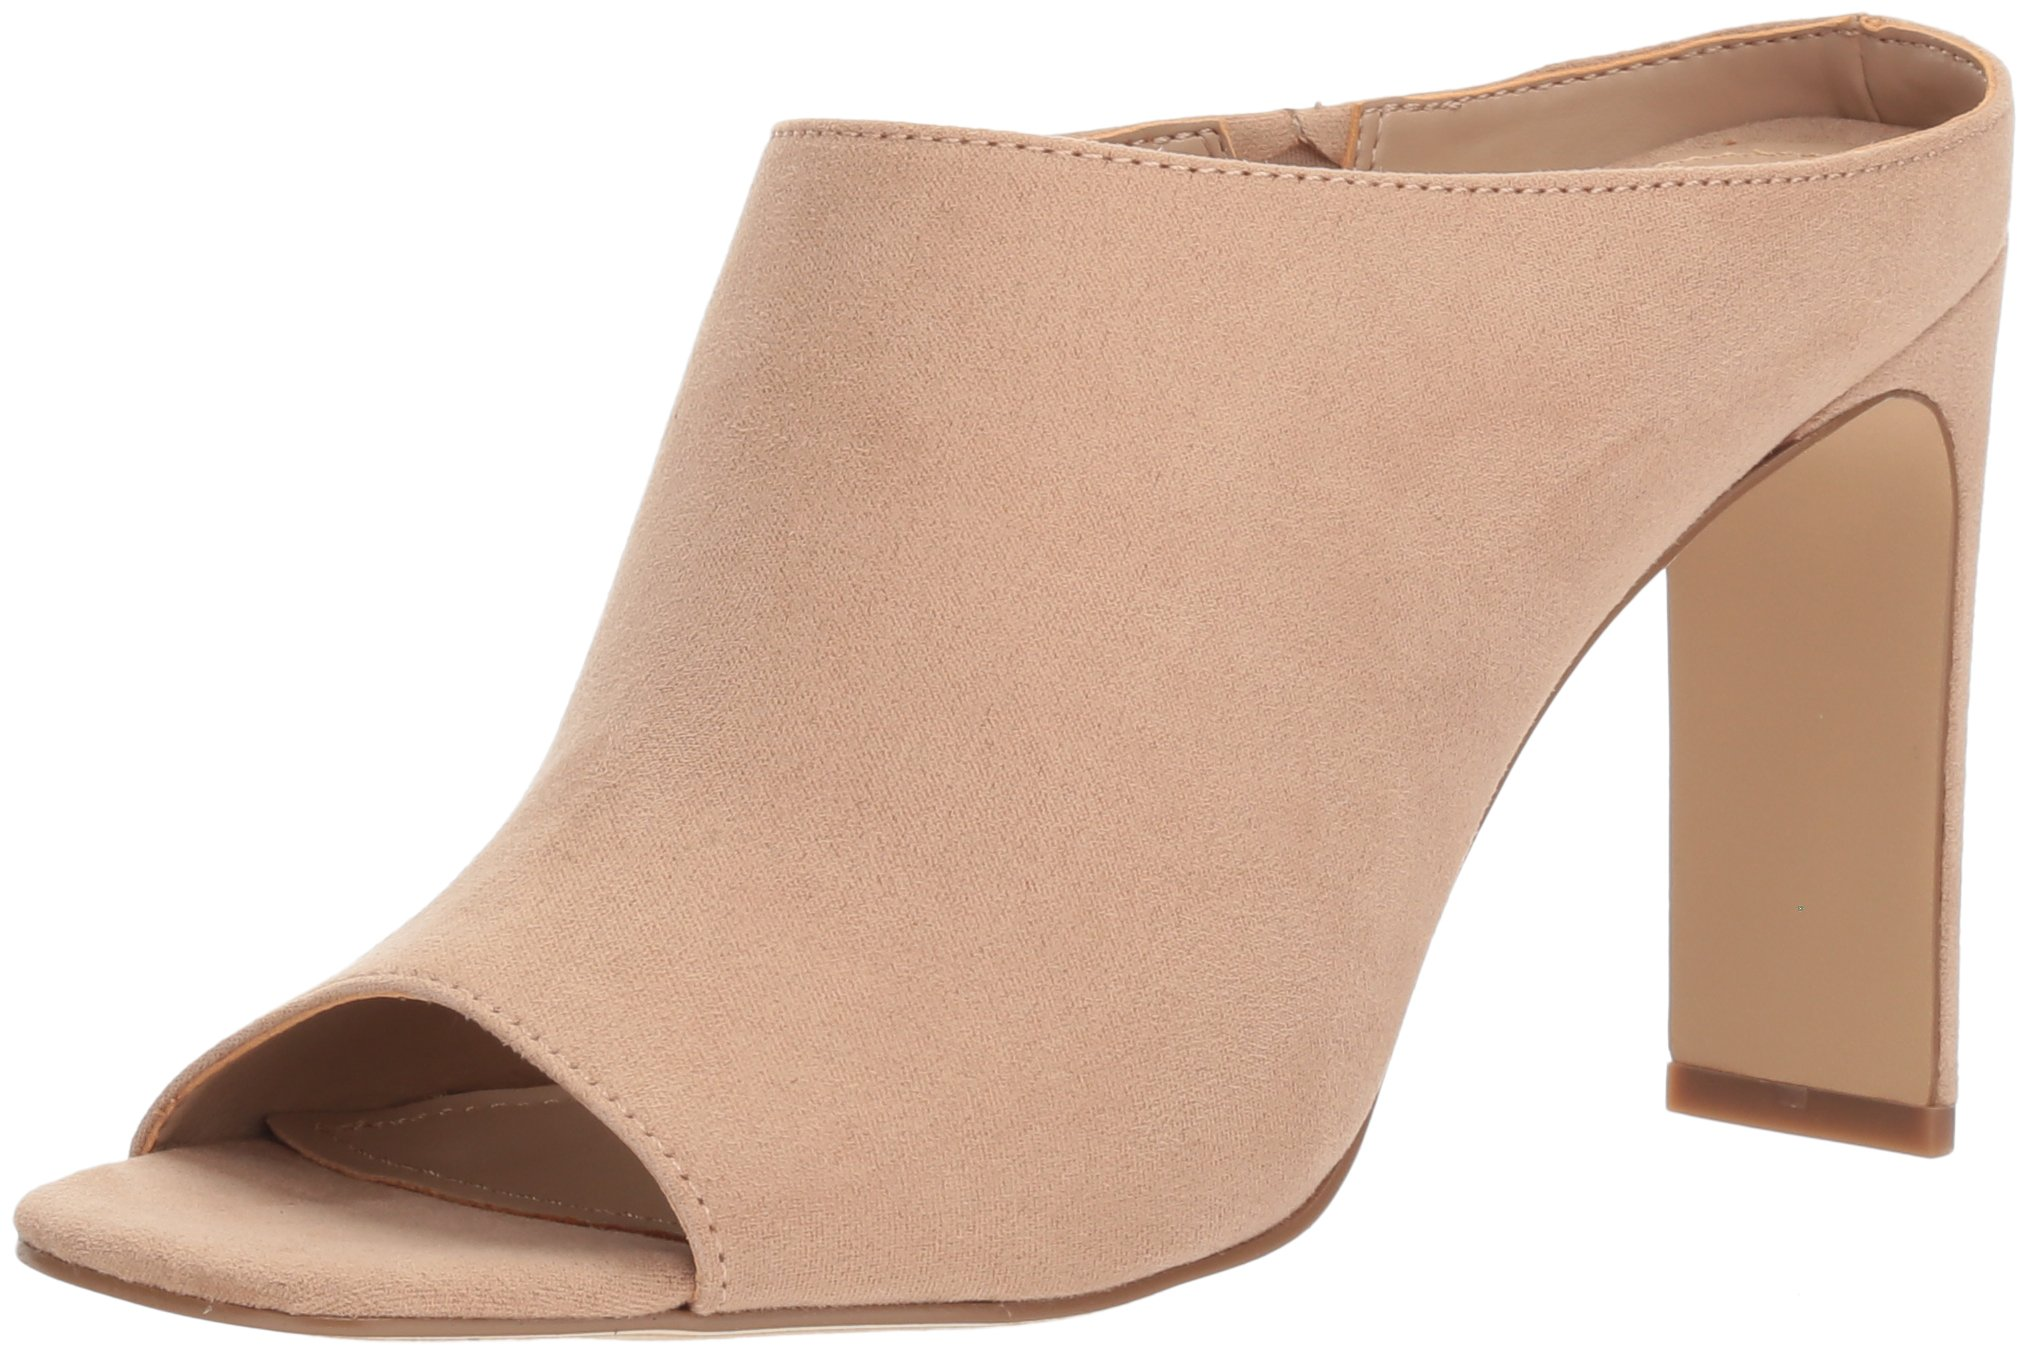 Style by Charles David Women's Gregg Heeled Sandal, Nude, 7 M US